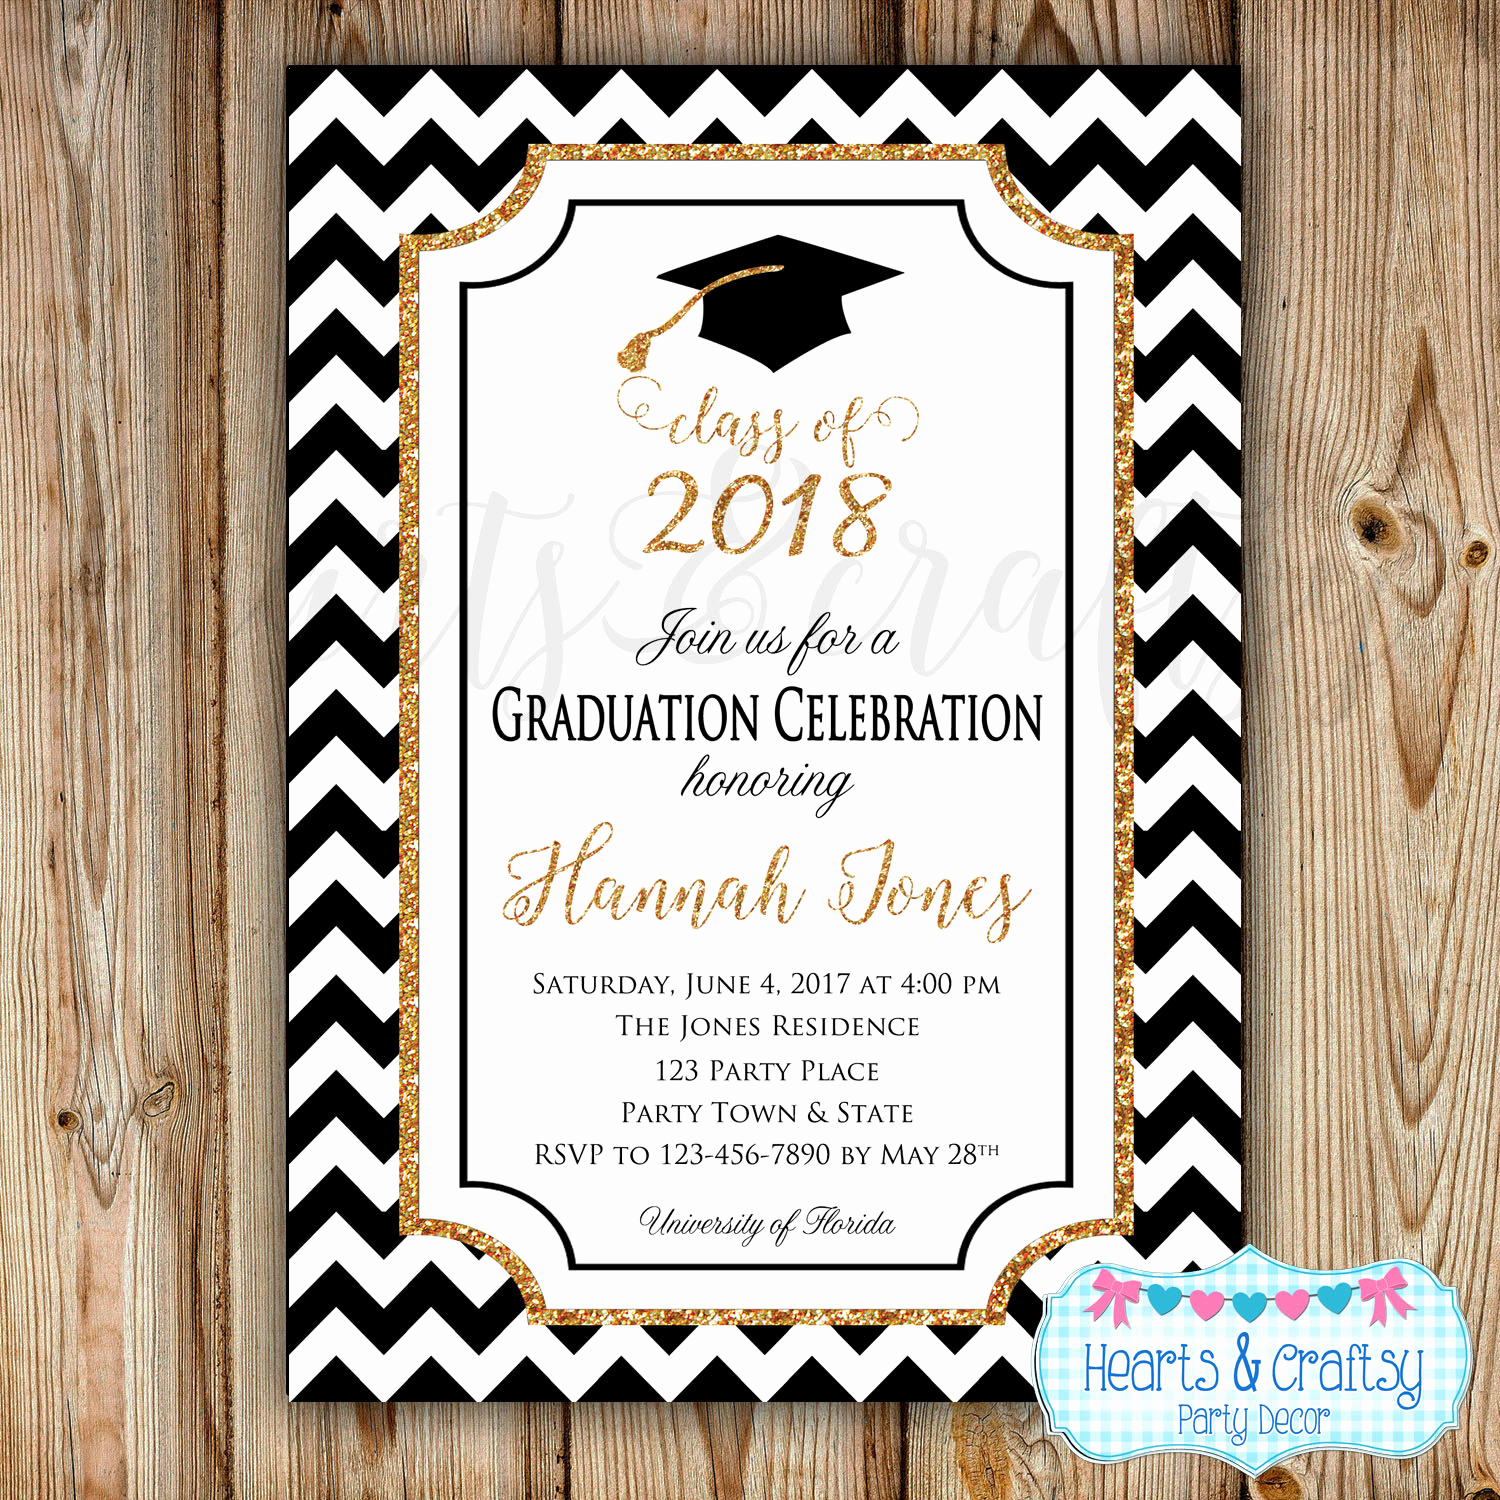 College Graduation Party Invitation Luxury Graduation Party Invitation College Graduation Invitation